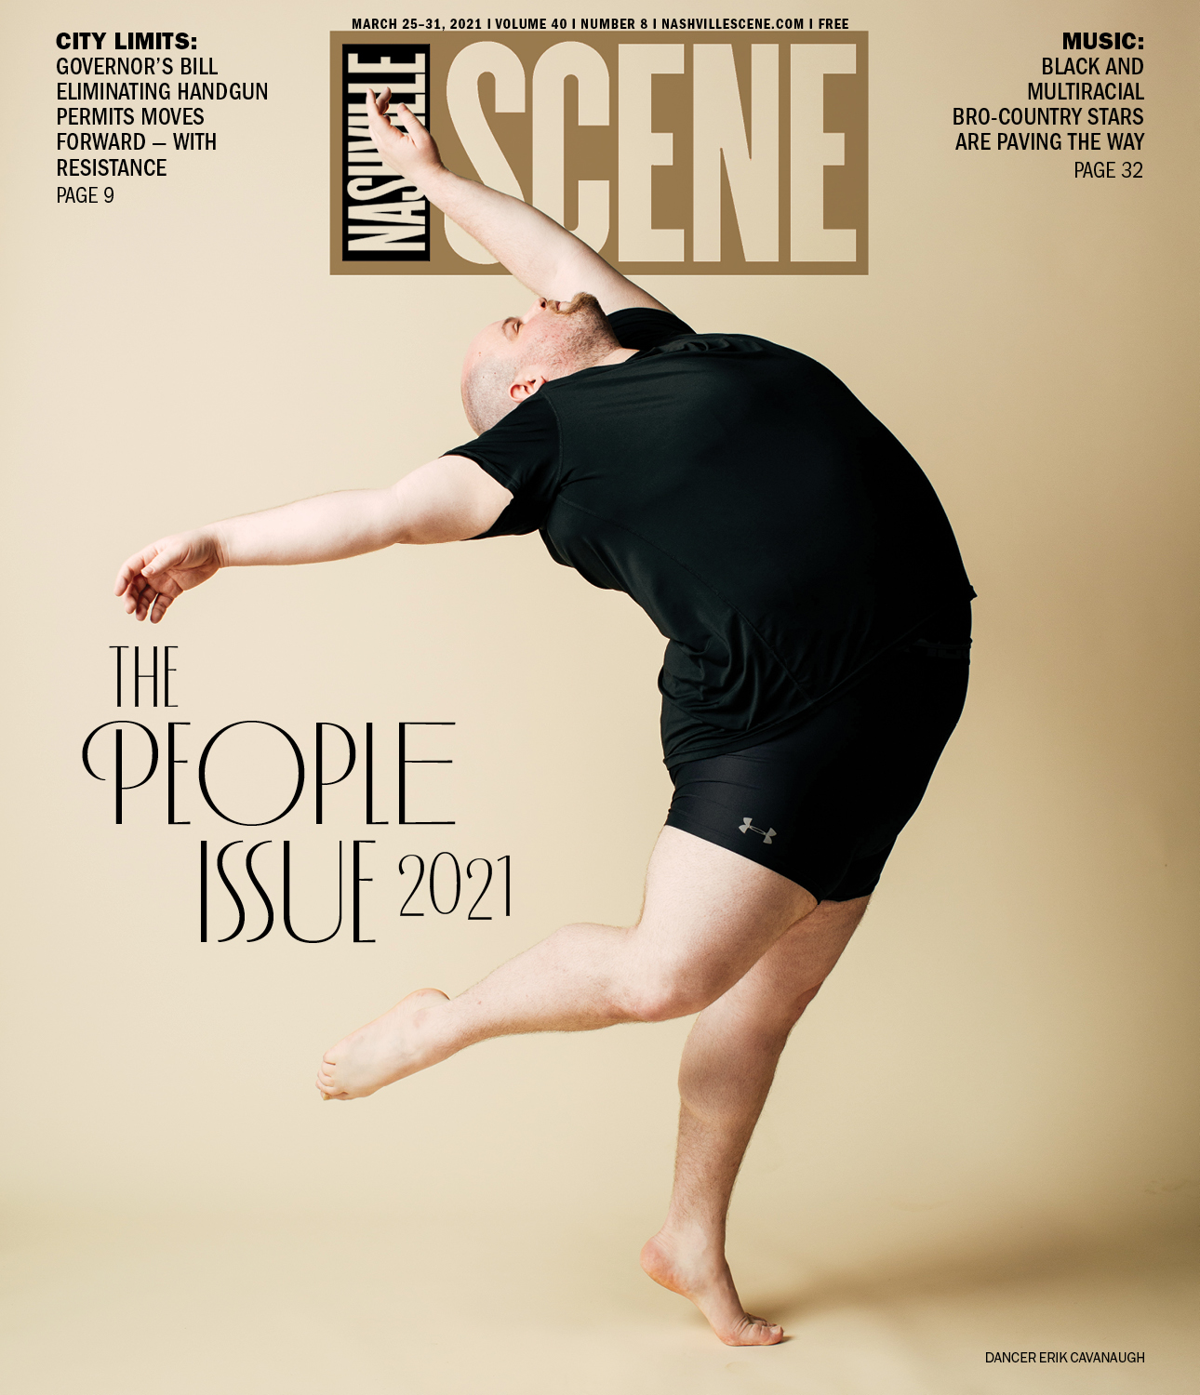 The People Issue 2021